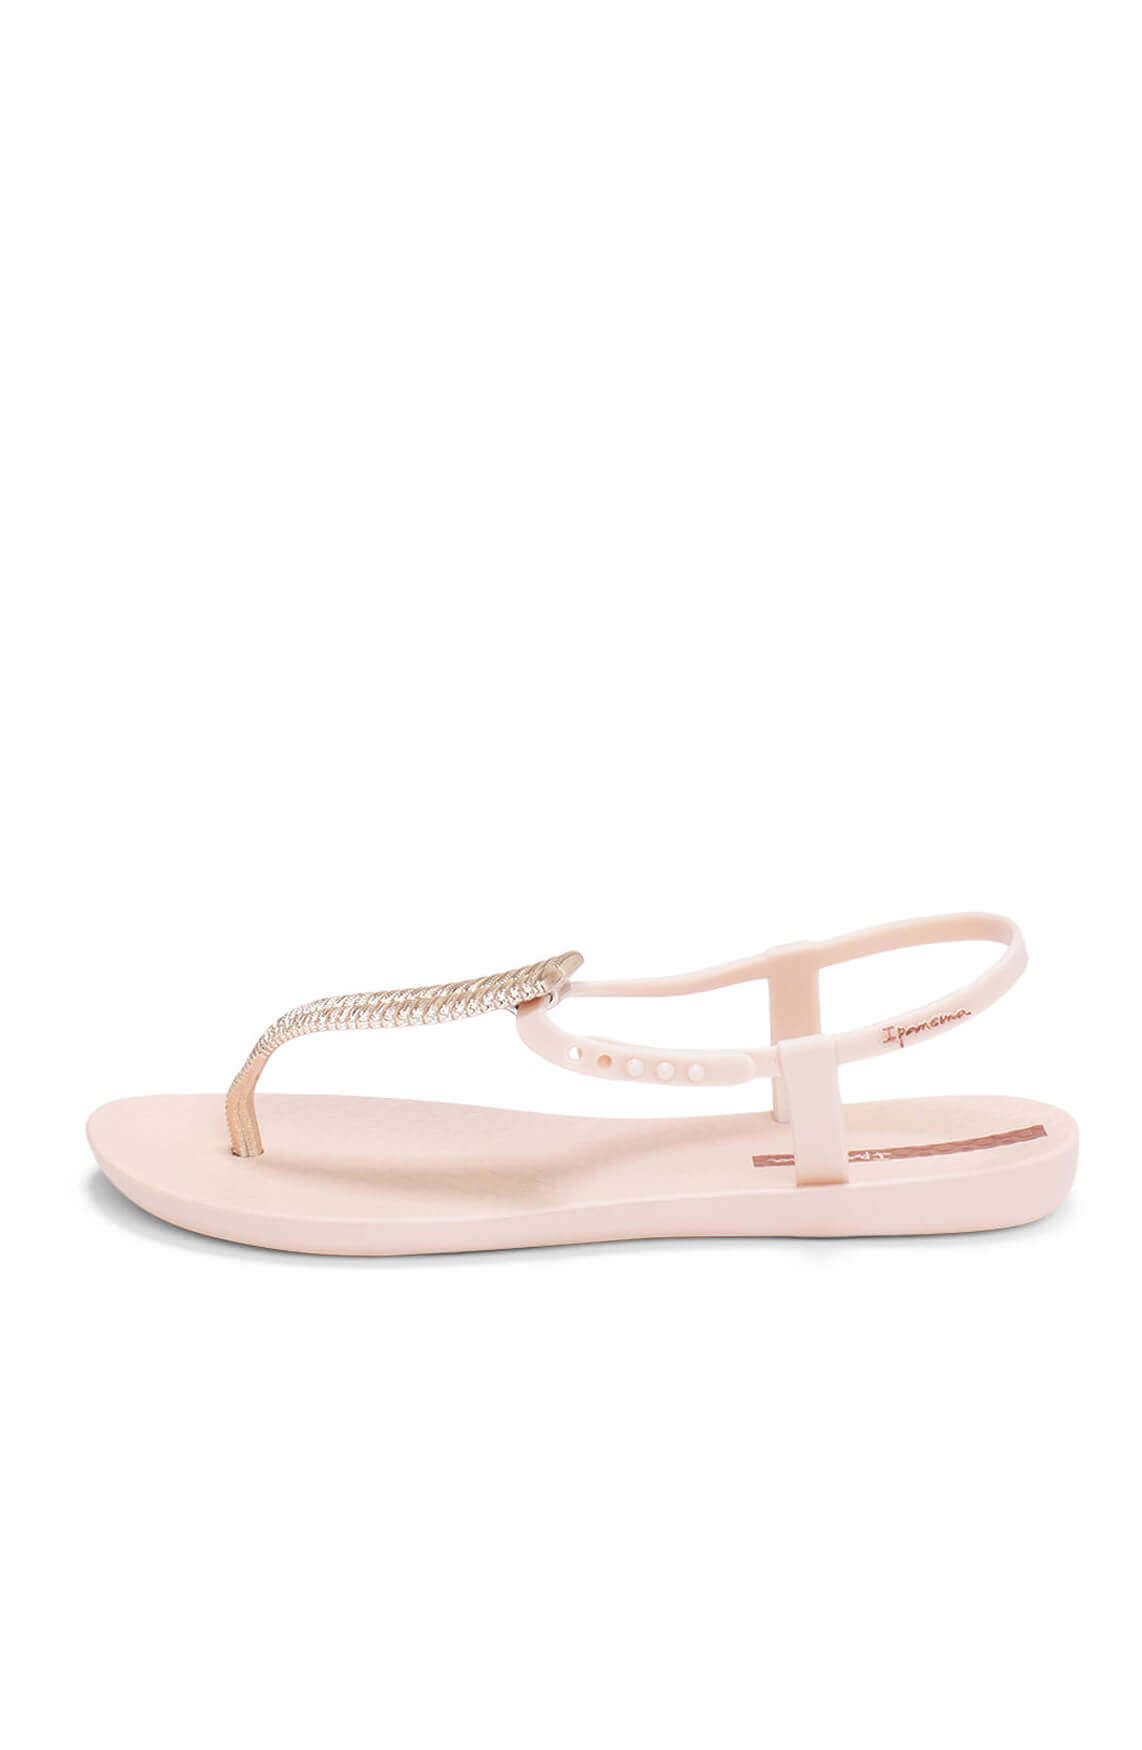 Ipanema Dames Glam slipper roze